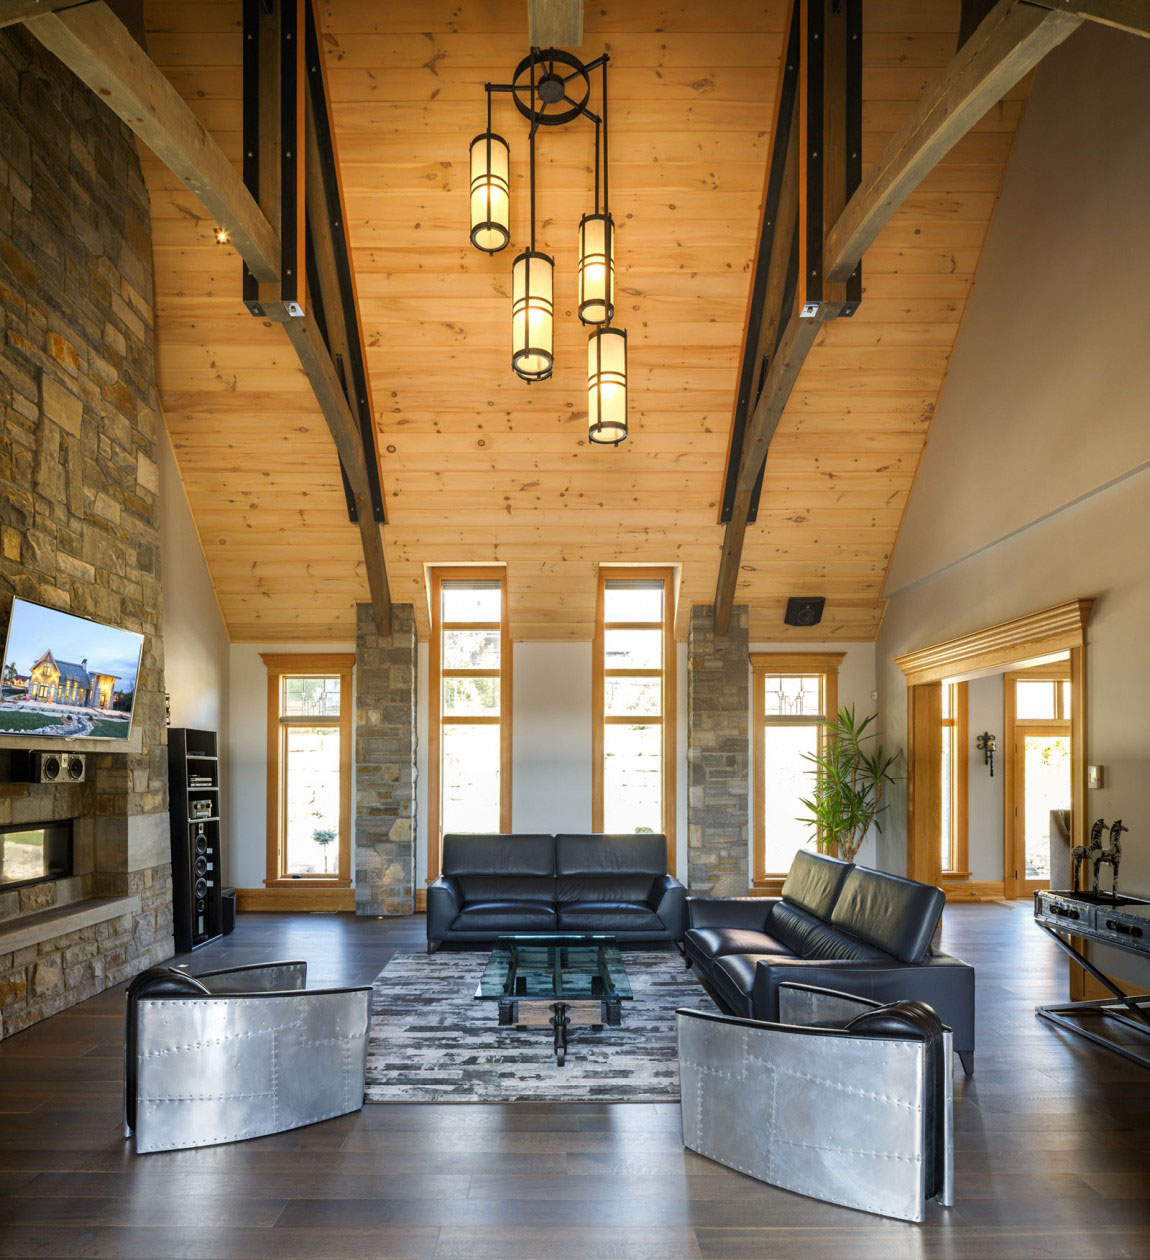 Rustic Contemporary Mountain Style Home With Innovative Design  iDesignArch  Interior Design